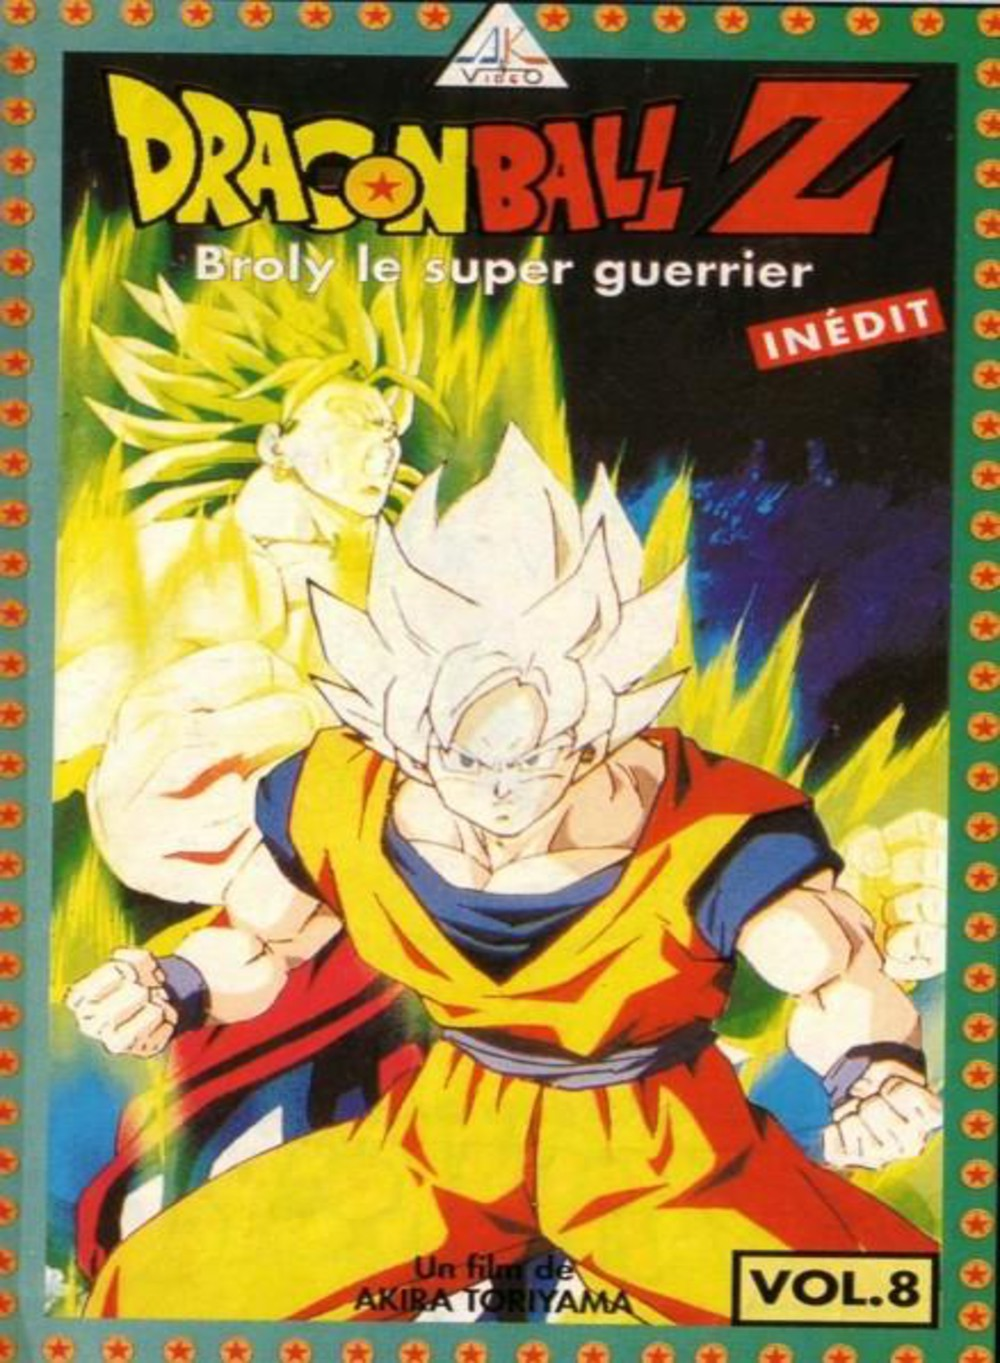 dragon ball z broly le super guerrier vf